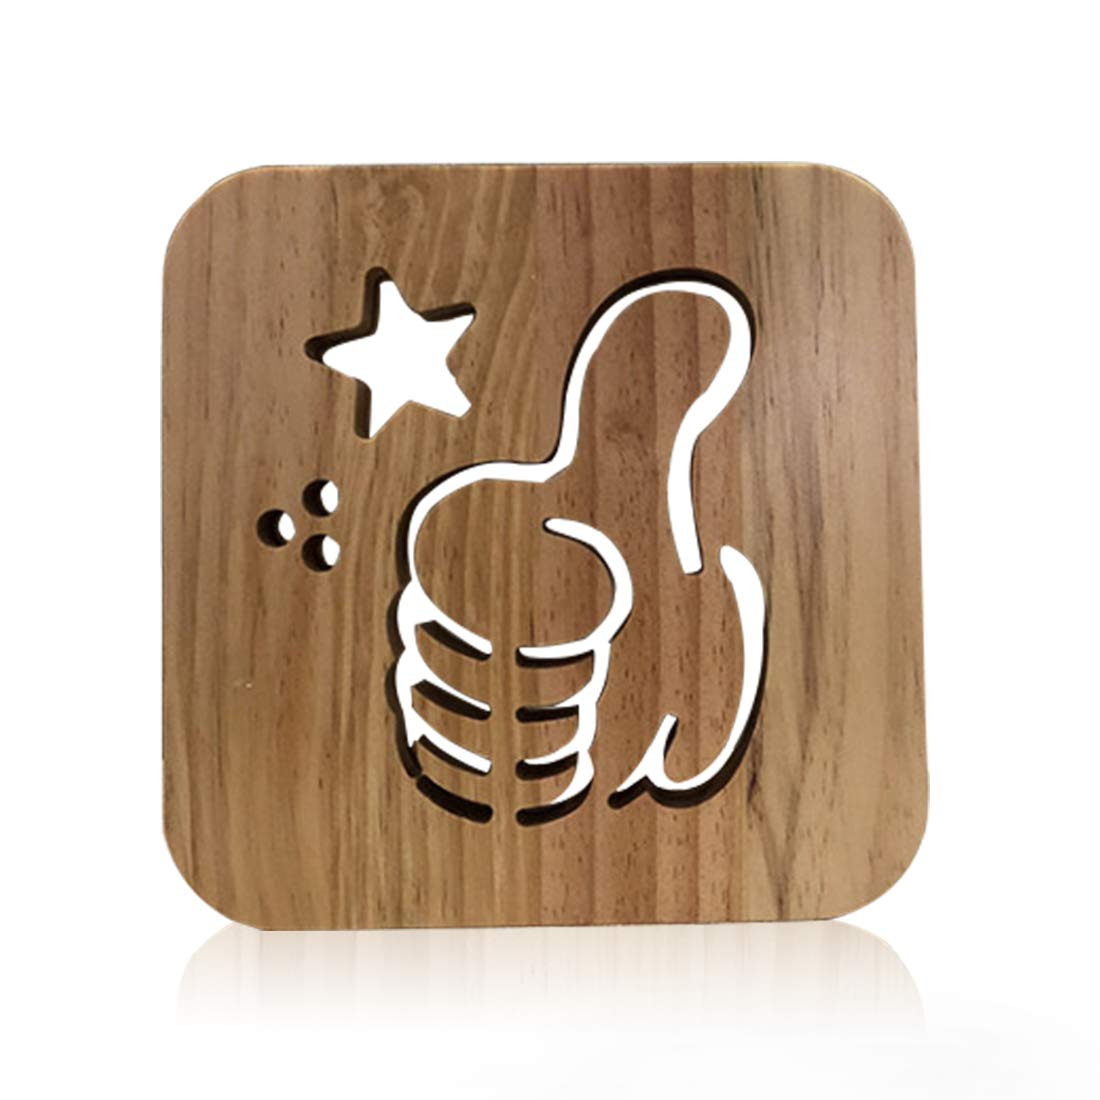 Wooden Like Gesture Led Lamp for Children, LeKong 3D Wooden Carving Patterns, USB Plug in, Gift for Birthday & Friendship, Fit for Halloween & Christmas Decoration, 2018 New